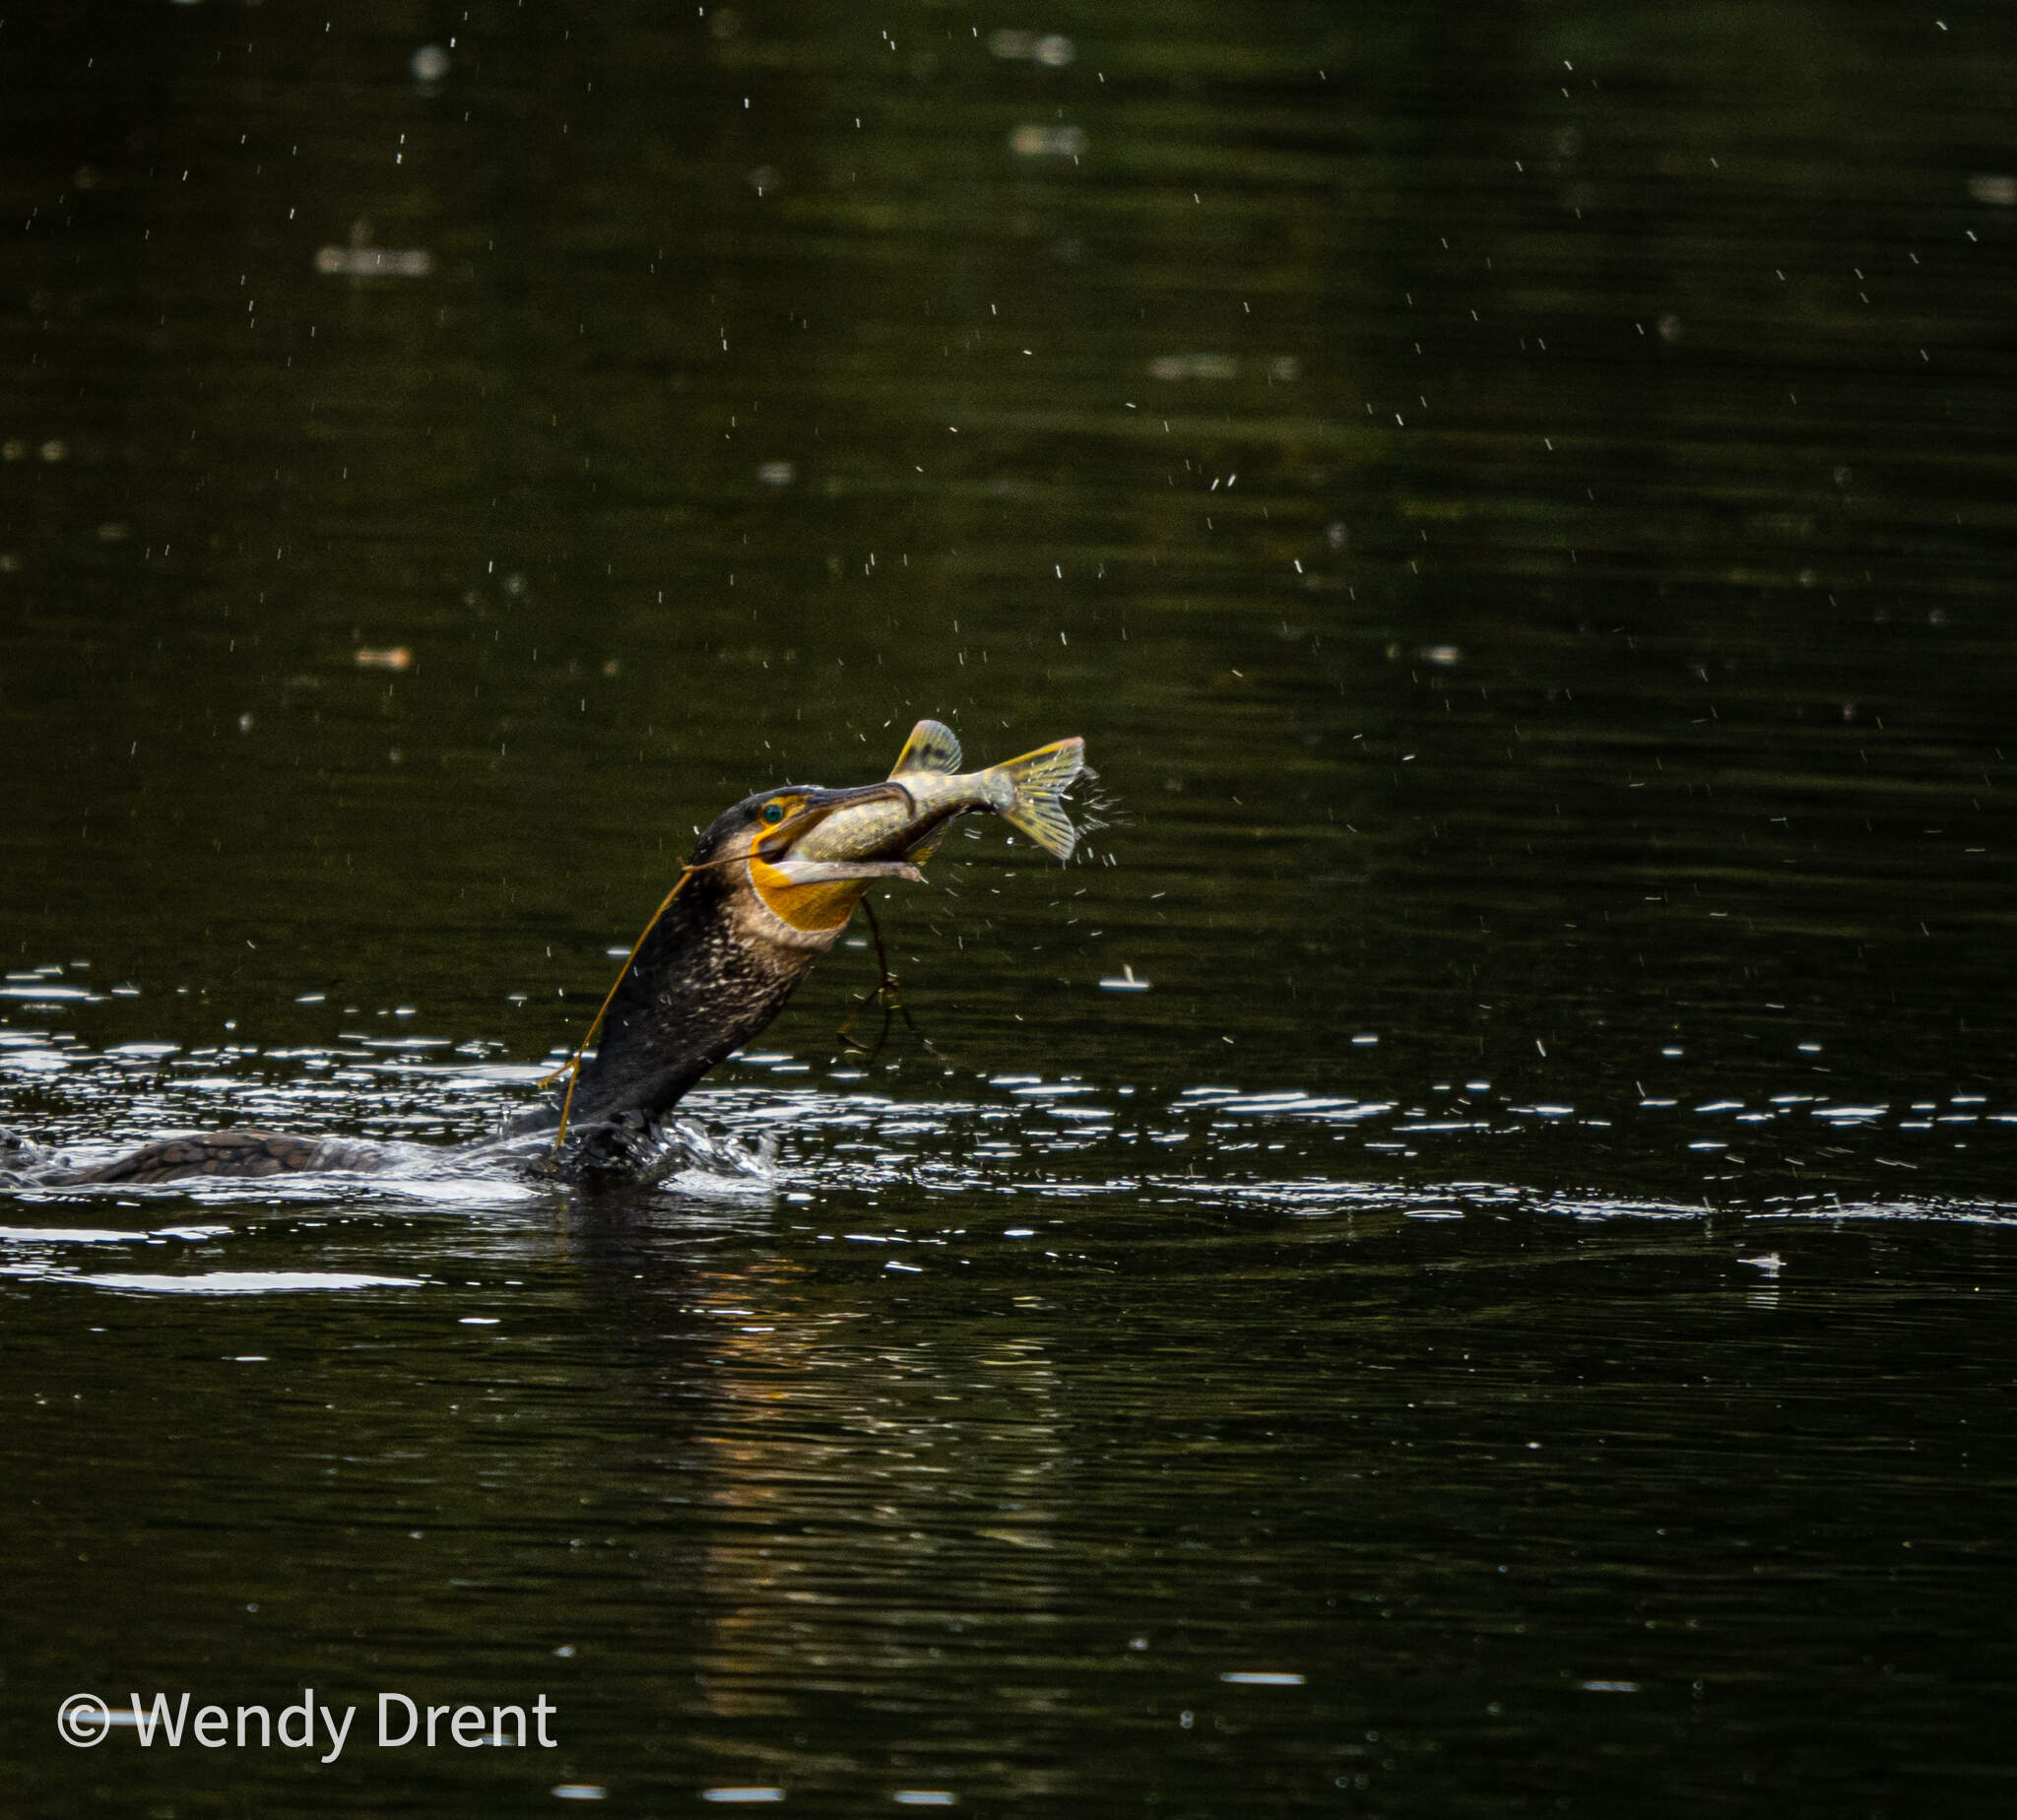 aalscholver, cormorant, Wendy drent, vogels, bird, action photography, bird with prey, water, fish, low key, naturephotography